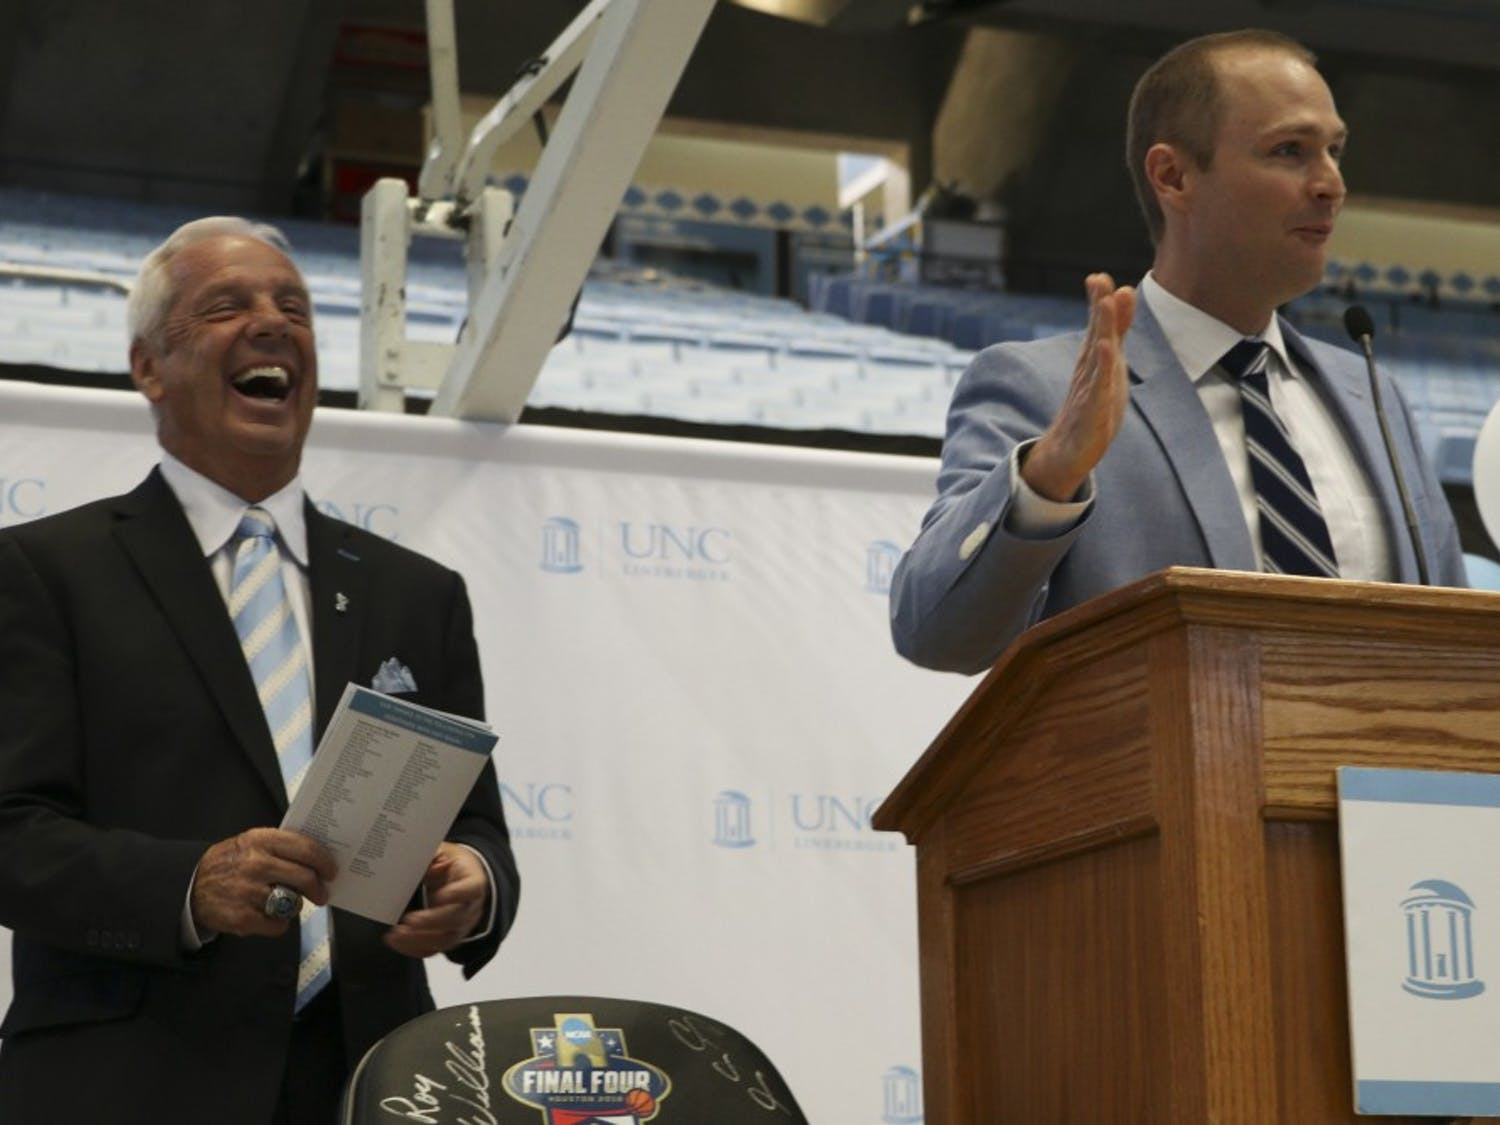 UNC play-by-play announcer Jones Angell and men's basketball head coach Roy Williams address the crowd at Williams' Fast Break Against Cancer event in the Smith Center on Monday, Oct. 2, 2017.